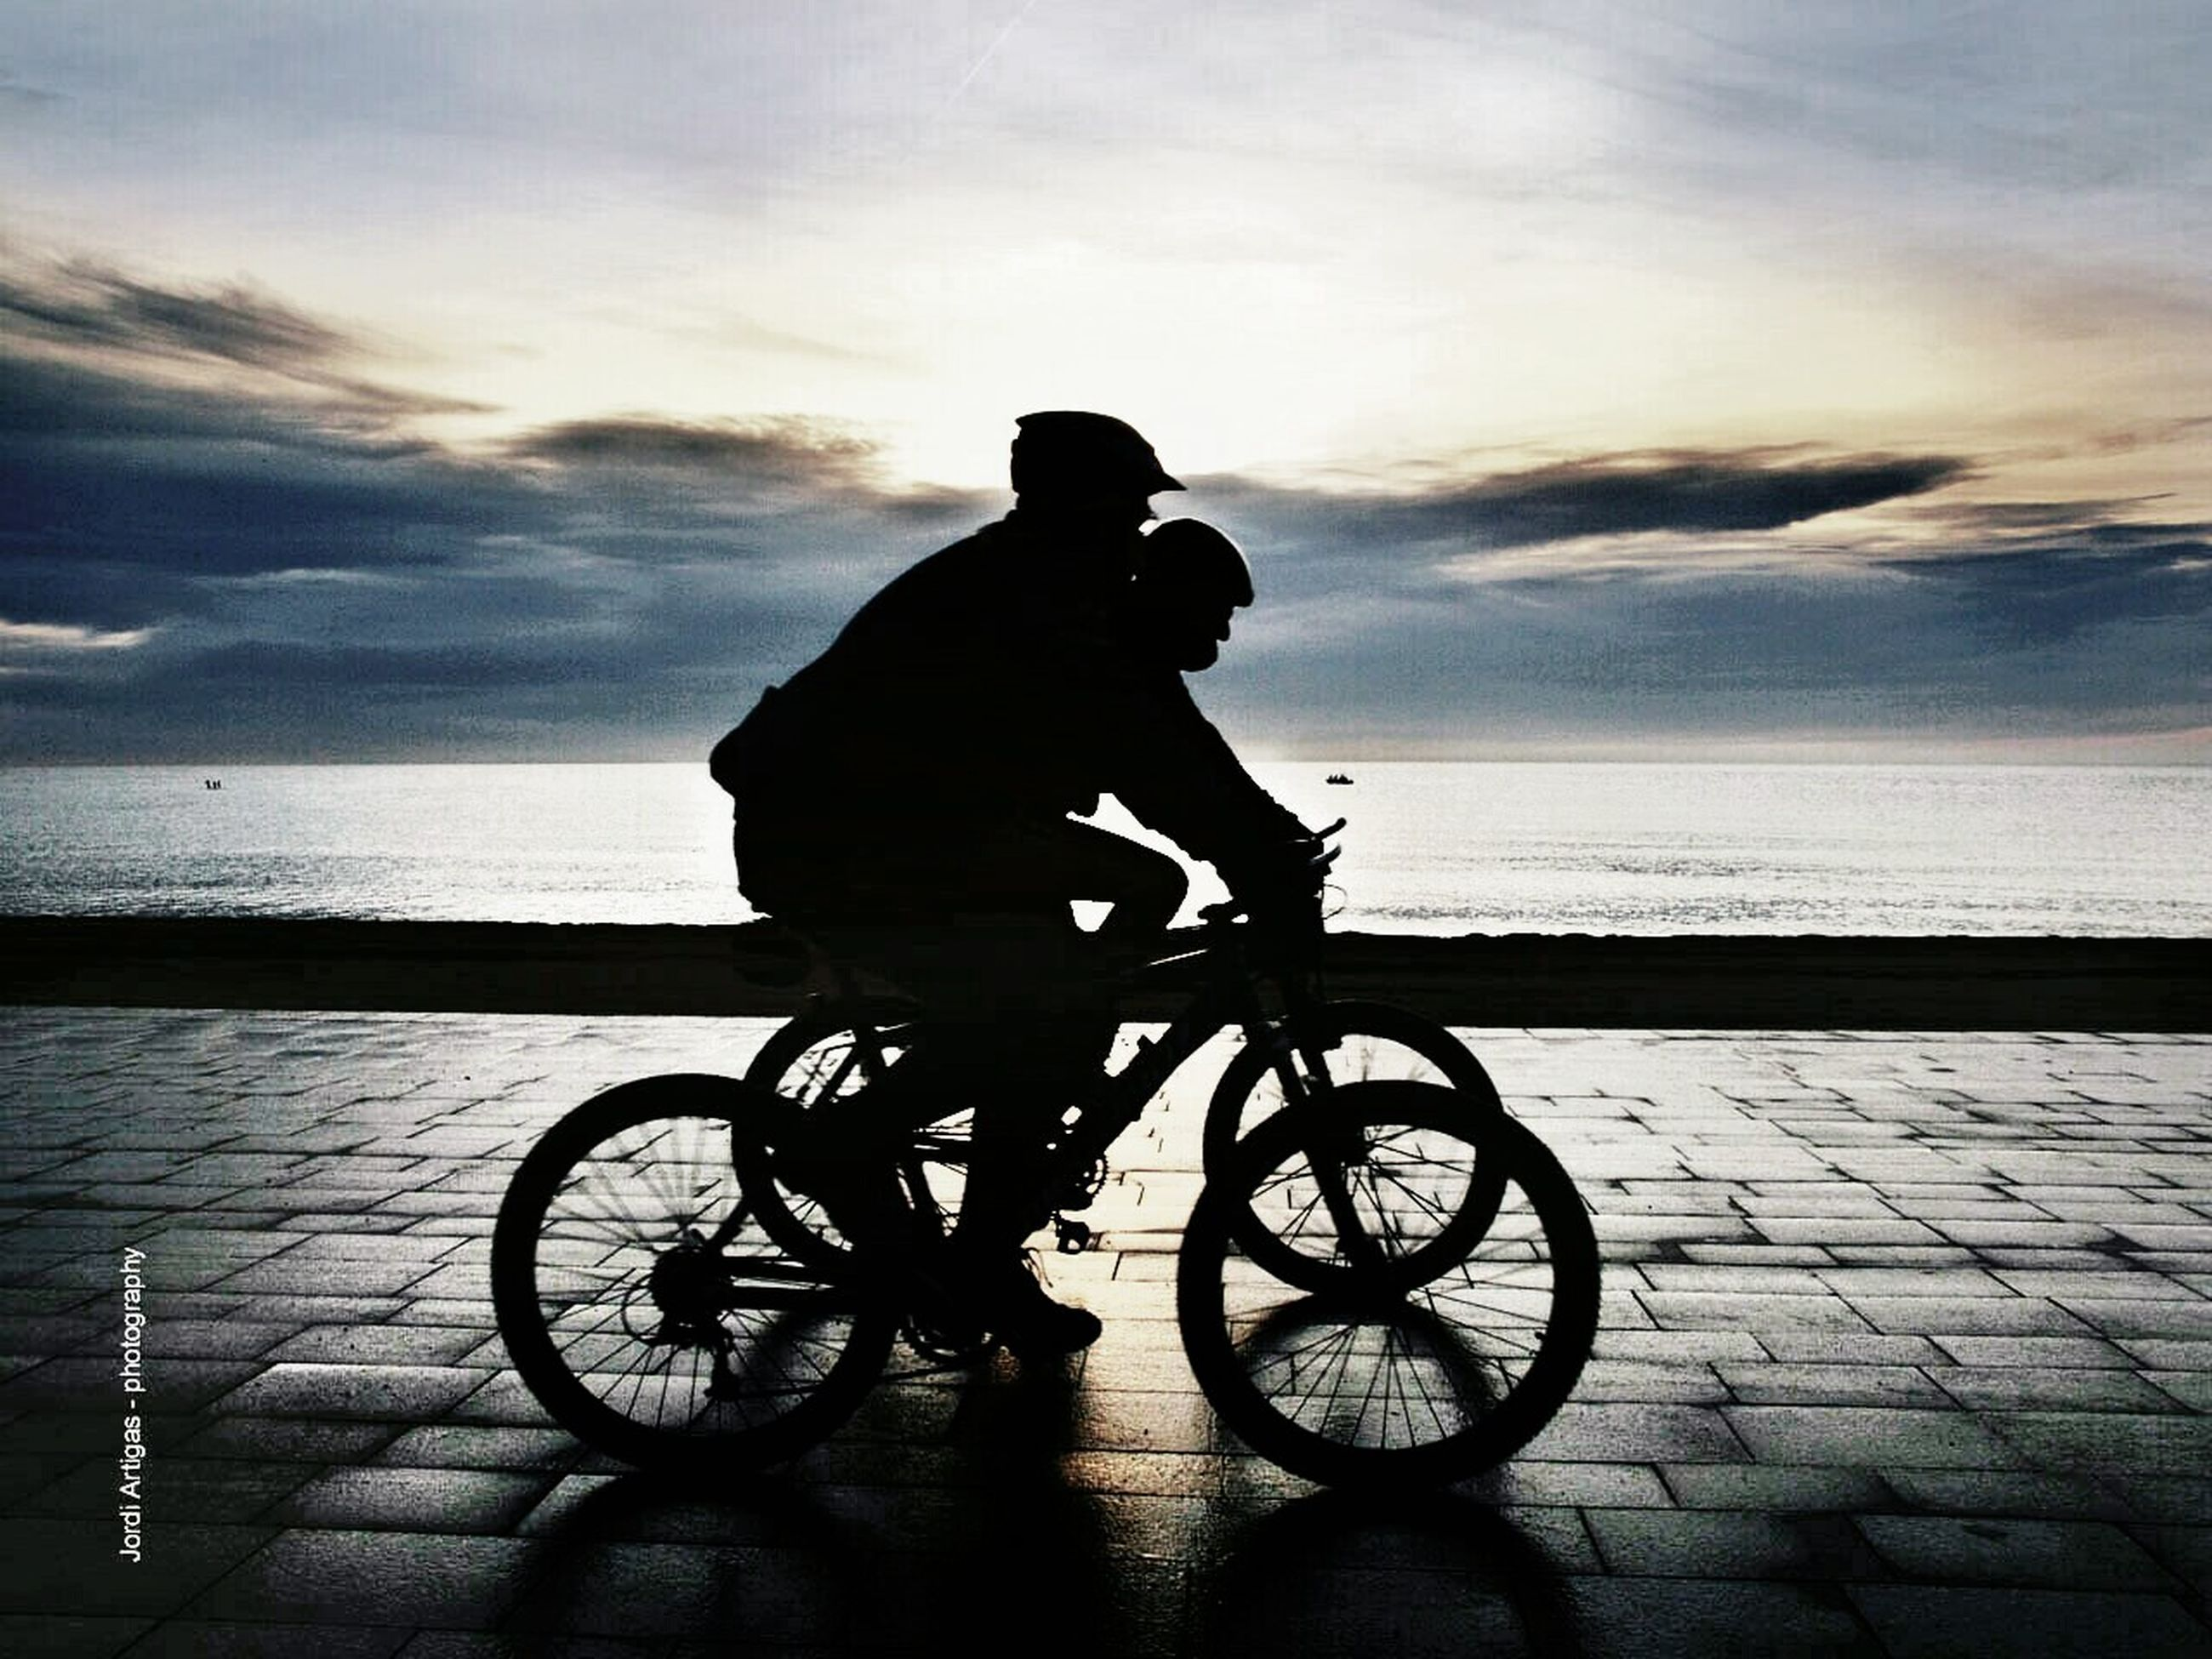 bicycle, sky, silhouette, transportation, sea, mode of transport, sunset, water, men, land vehicle, horizon over water, lifestyles, leisure activity, cloud - sky, riding, full length, beach, side view